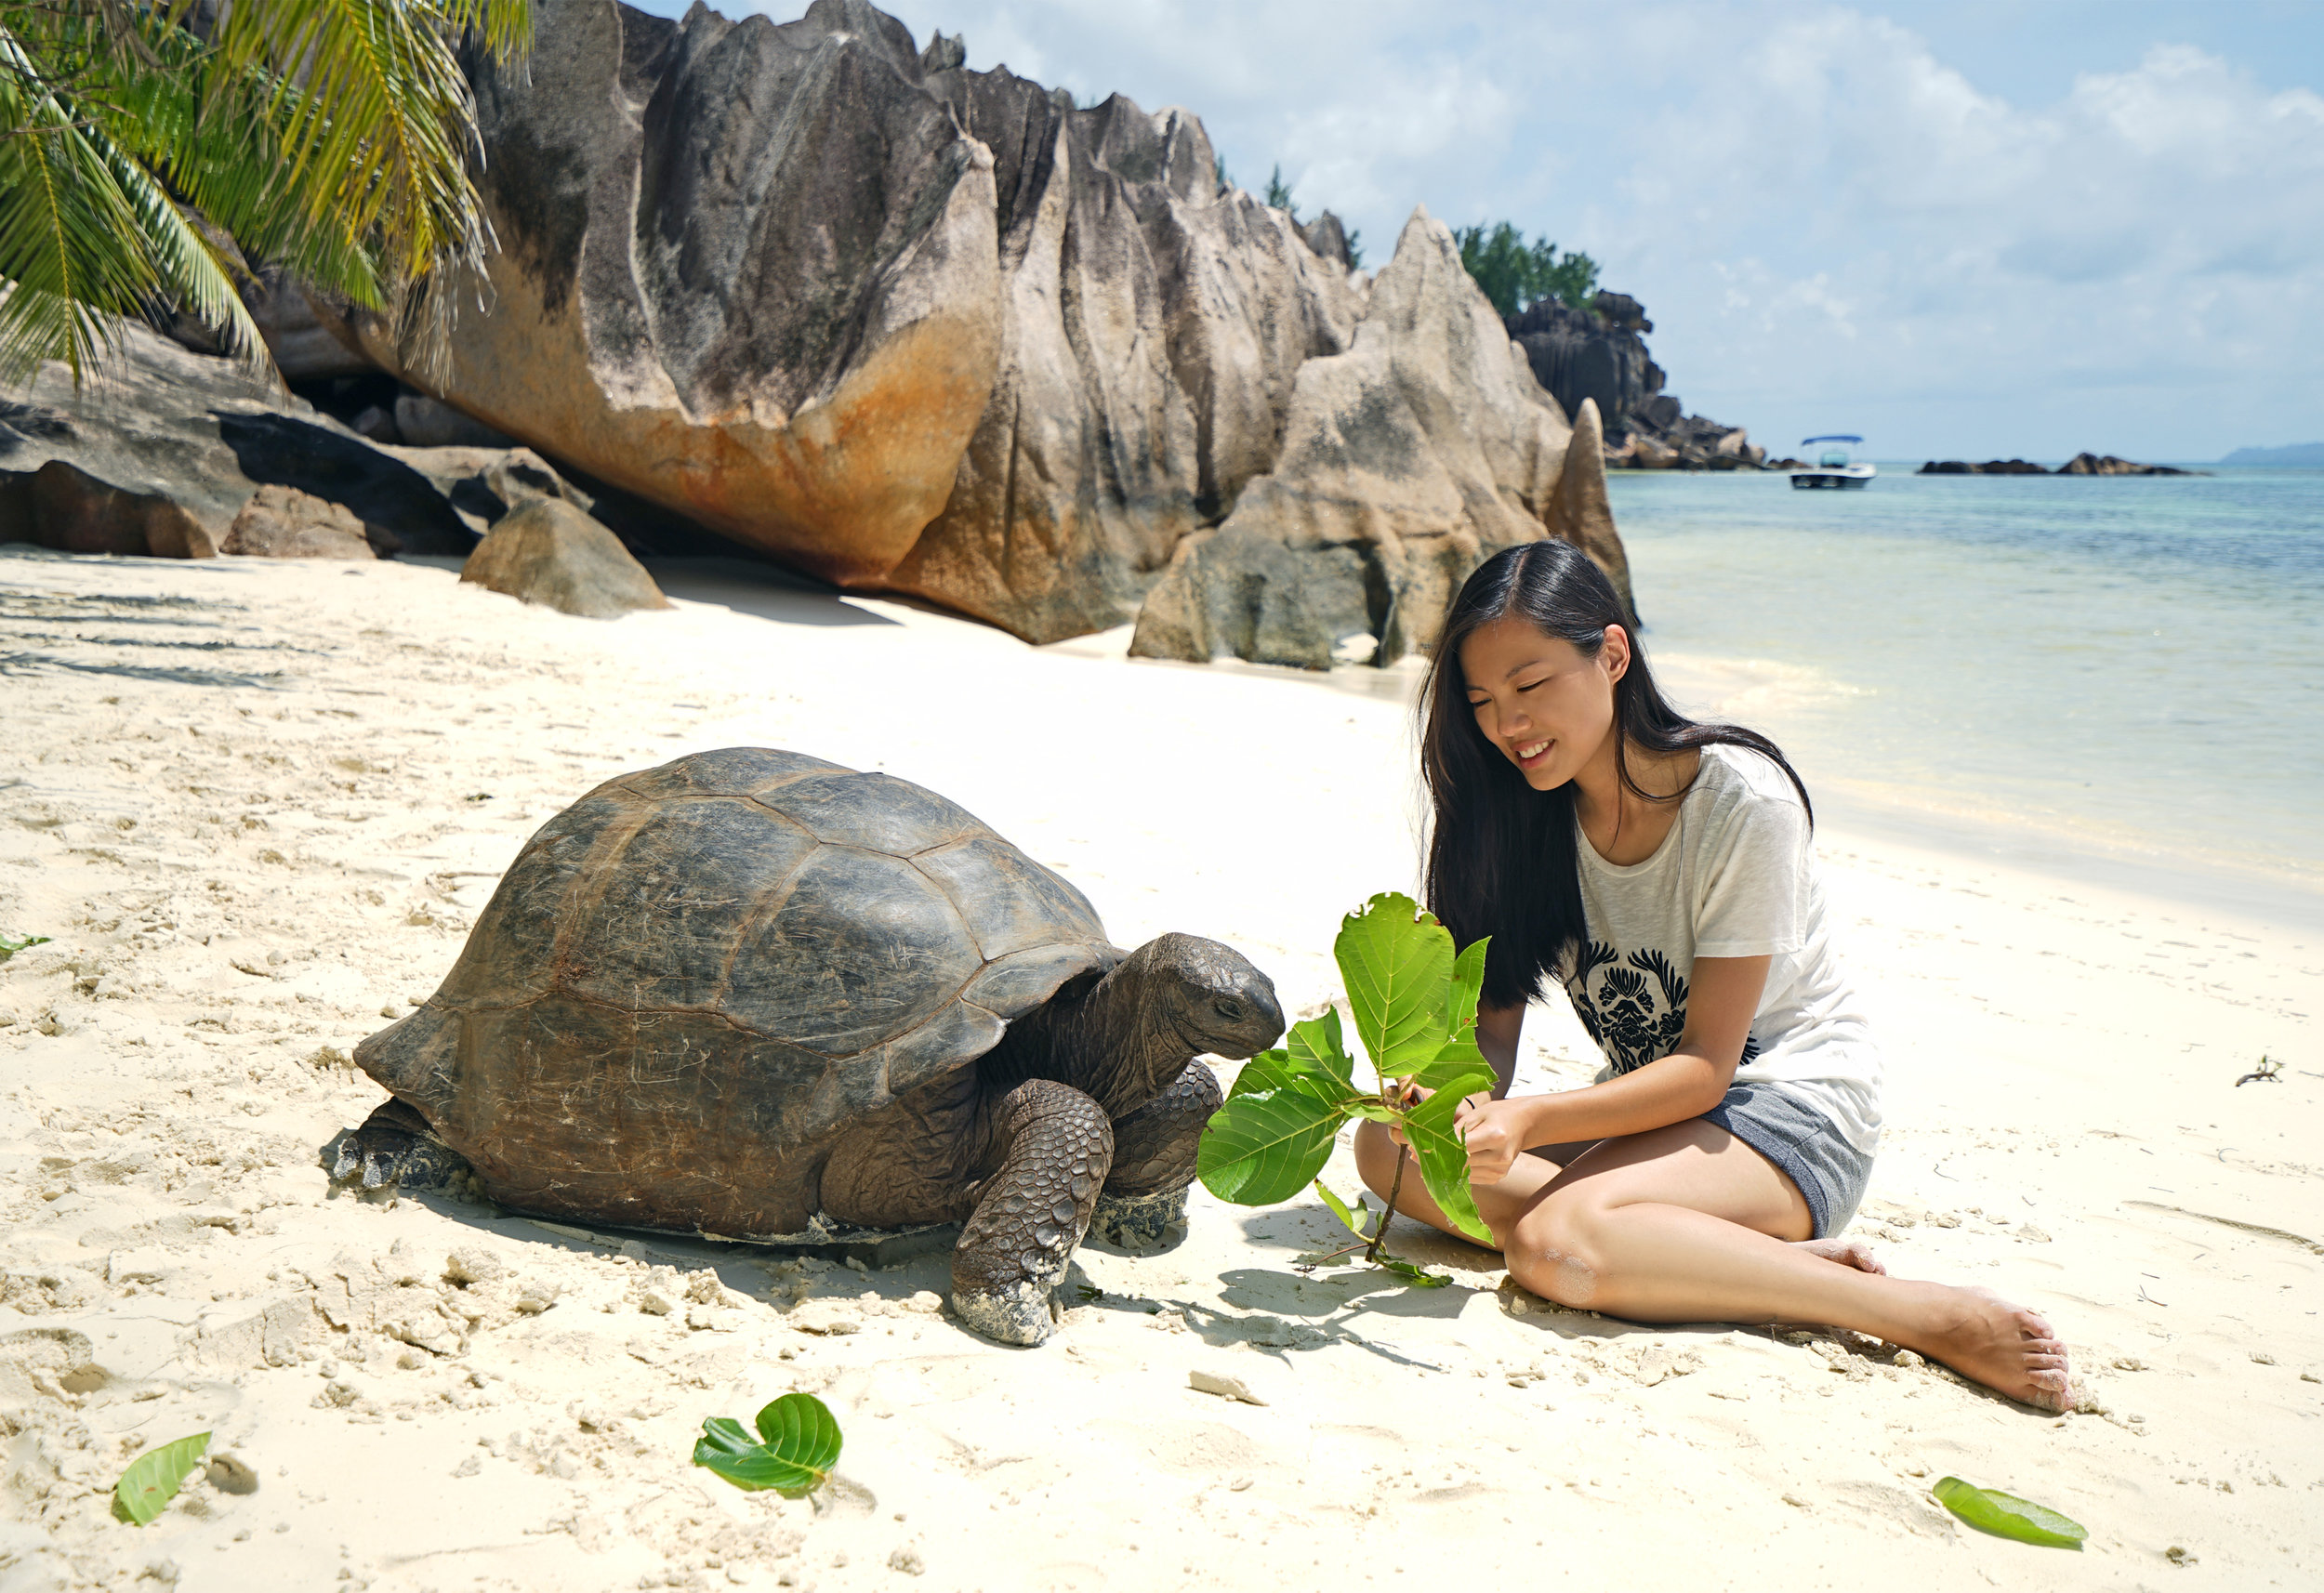 Feeding wild giant tortoise at Cousine Island, found him at the beach eating leaves fallen from the tree,and decided feed him fresh branches